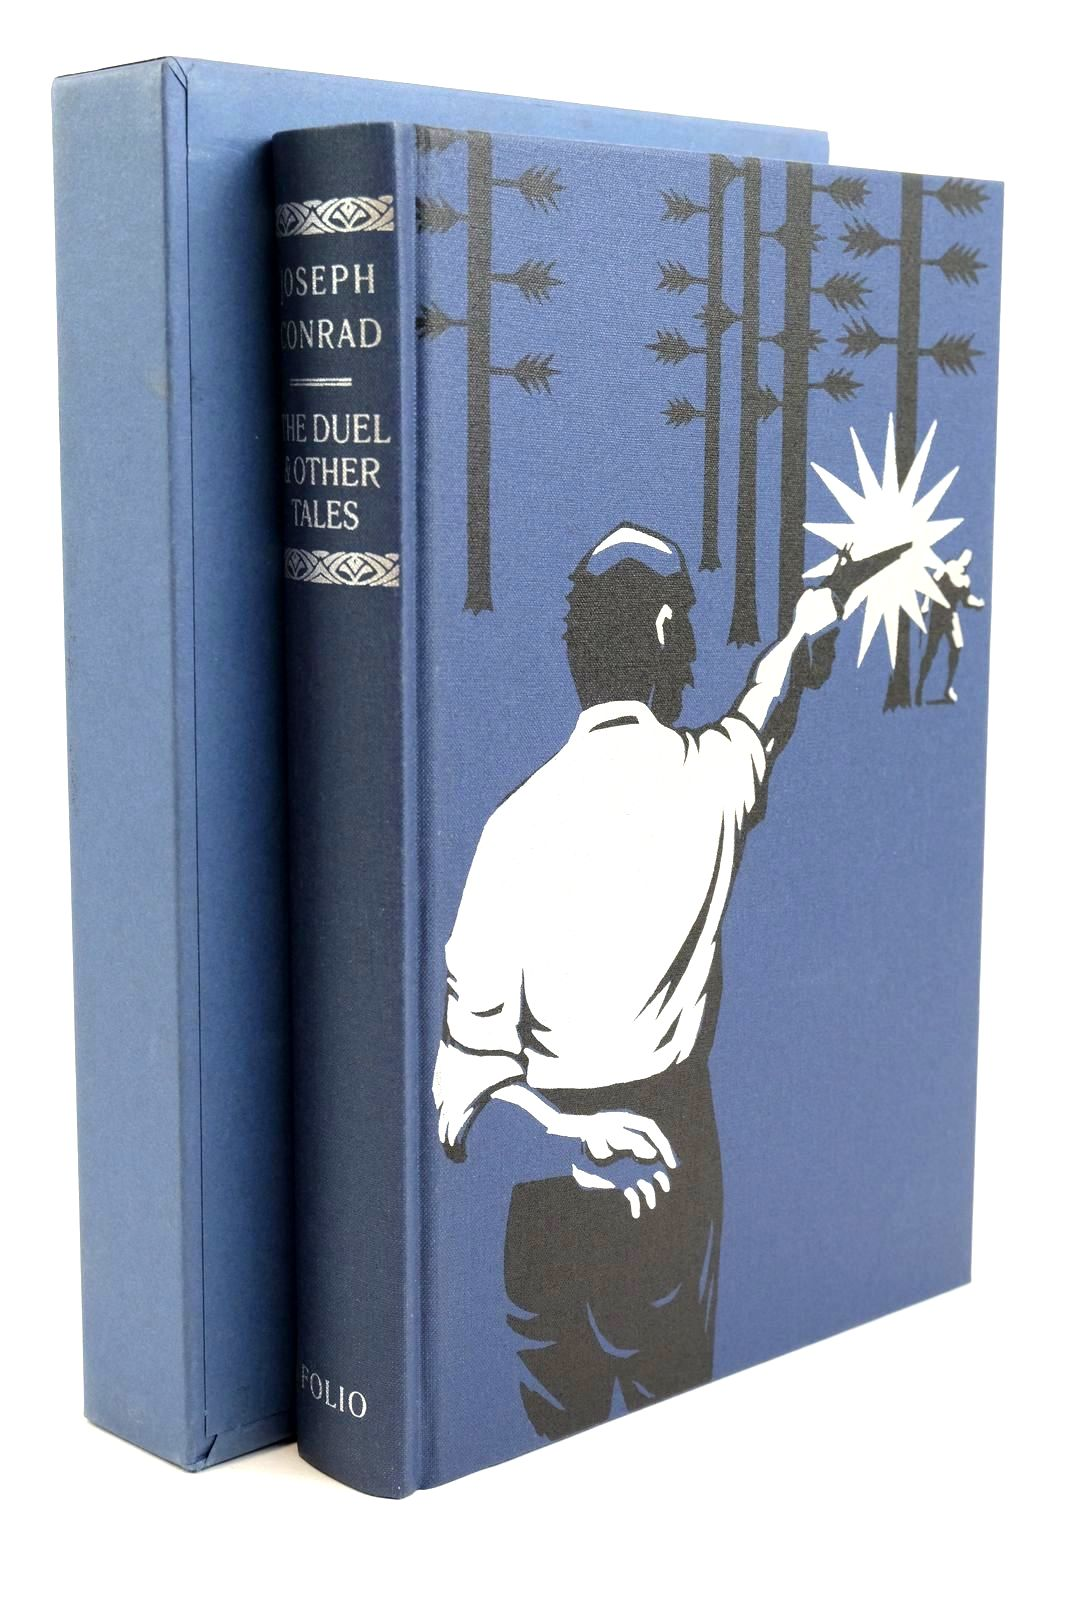 Photo of THE DUEL AND OTHER TALES written by Conrad, Joseph published by Folio Society (STOCK CODE: 1320465)  for sale by Stella & Rose's Books